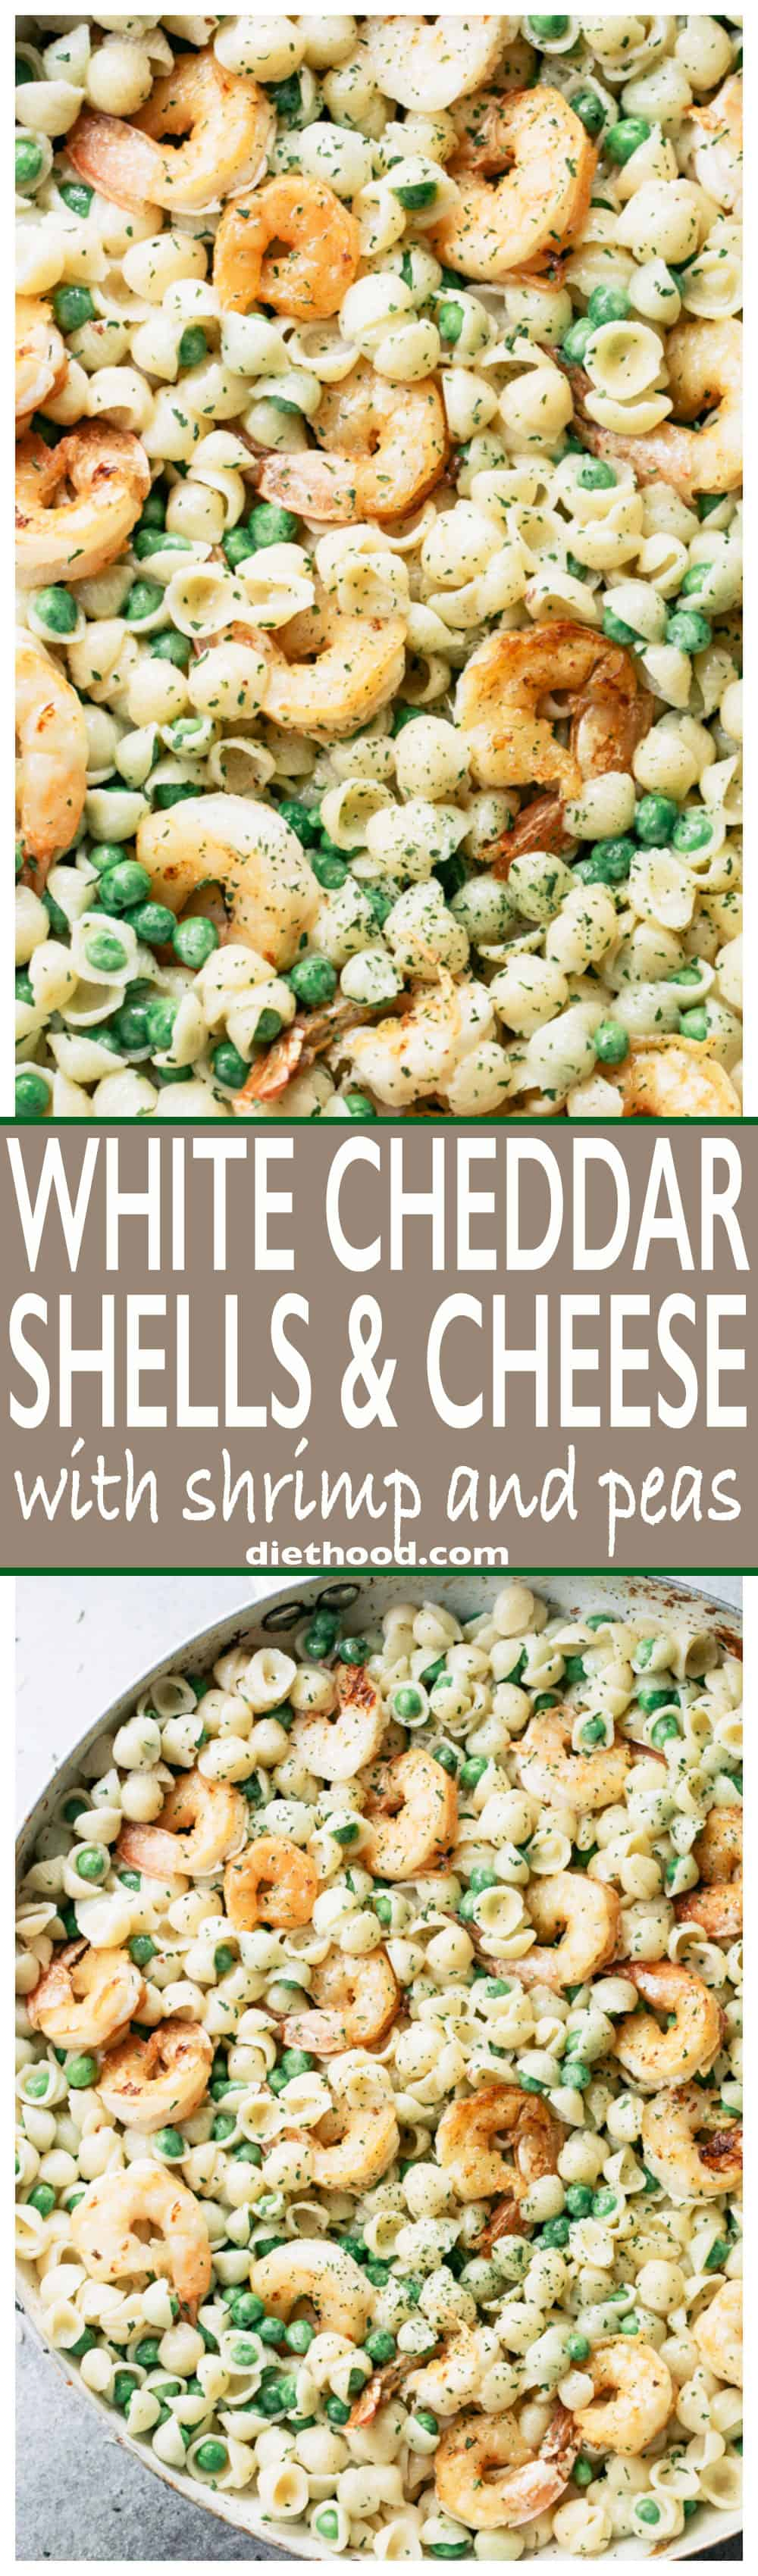 White Cheddar Shells and Cheese with Shrimp and Peas - Made with lightened up creamy white cheddar cheese sauce, pasta shells, and sweet peas, Shrimp Shells and Cheeseputs a new spin on ordinary mac 'n cheese and the whole family will LOVE it!